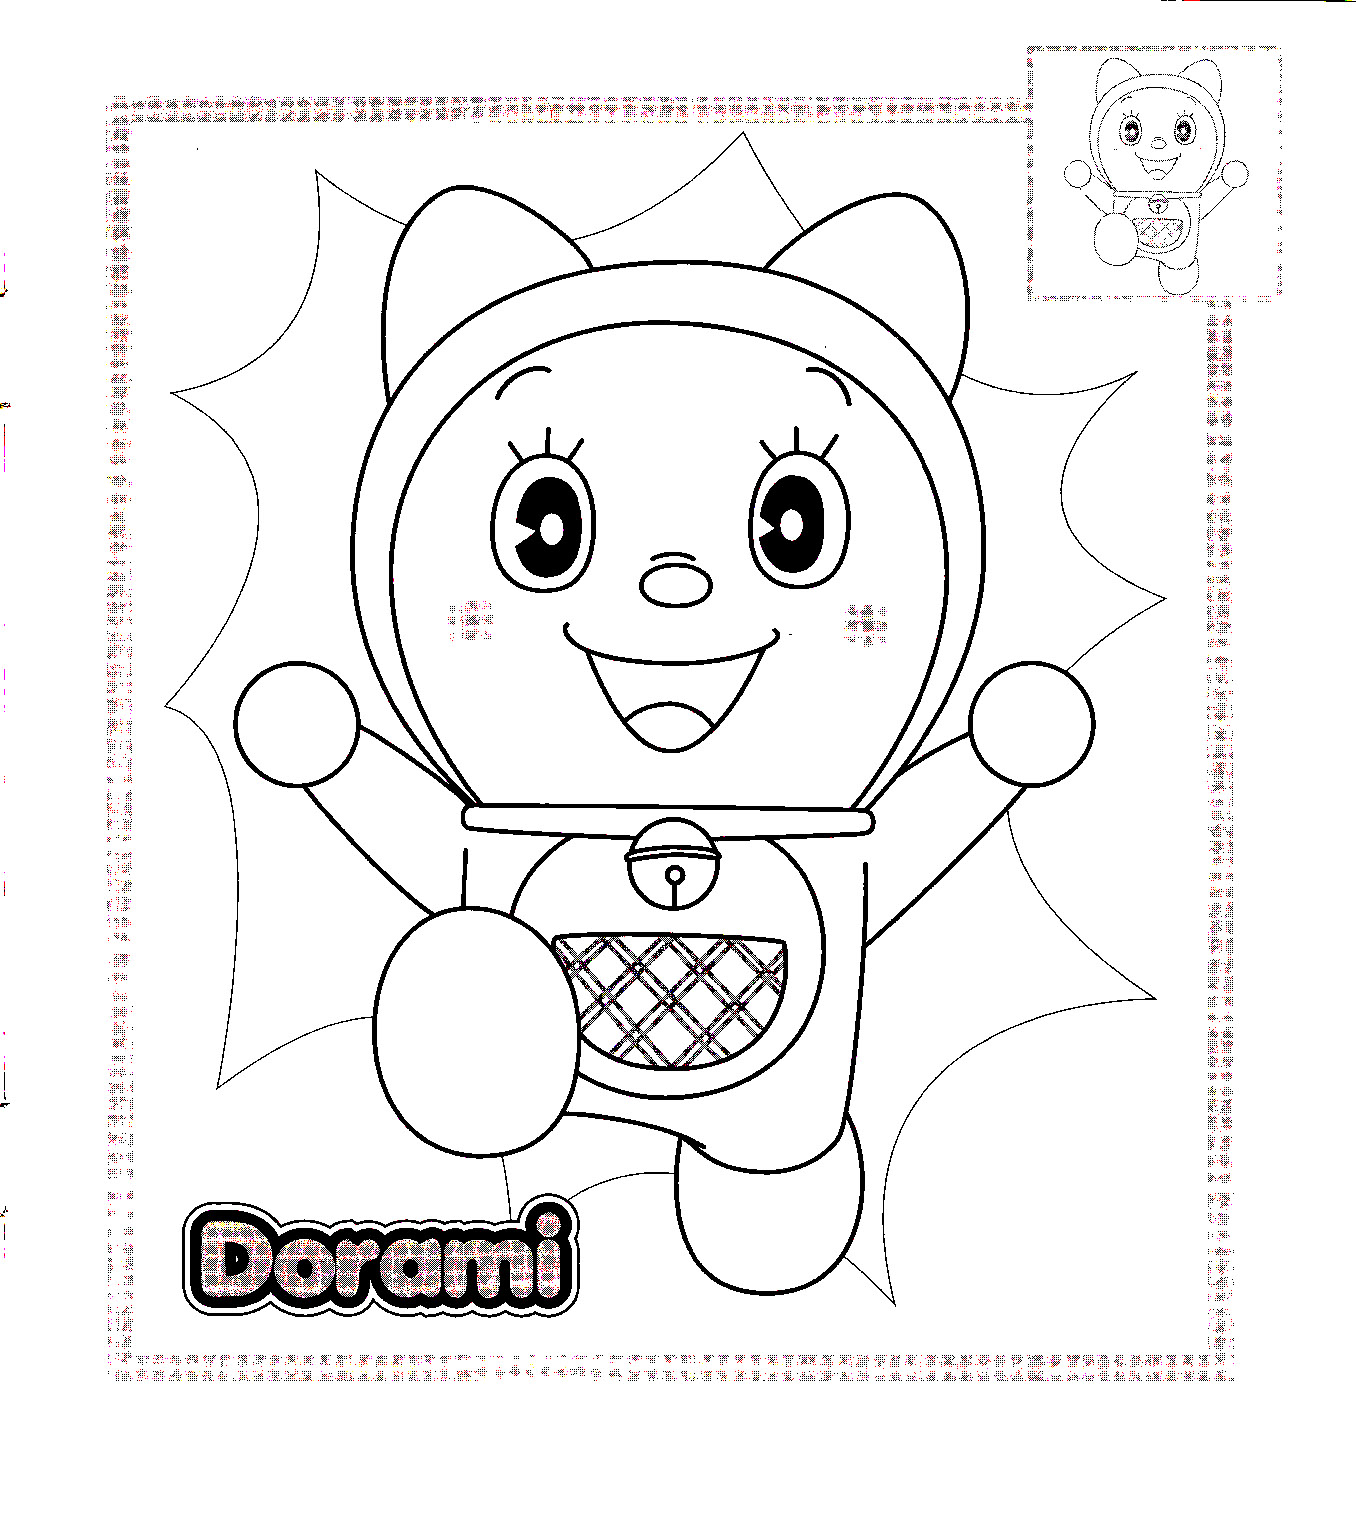 Doraemon coloring pages minister coloring for Doraemon coloring pages